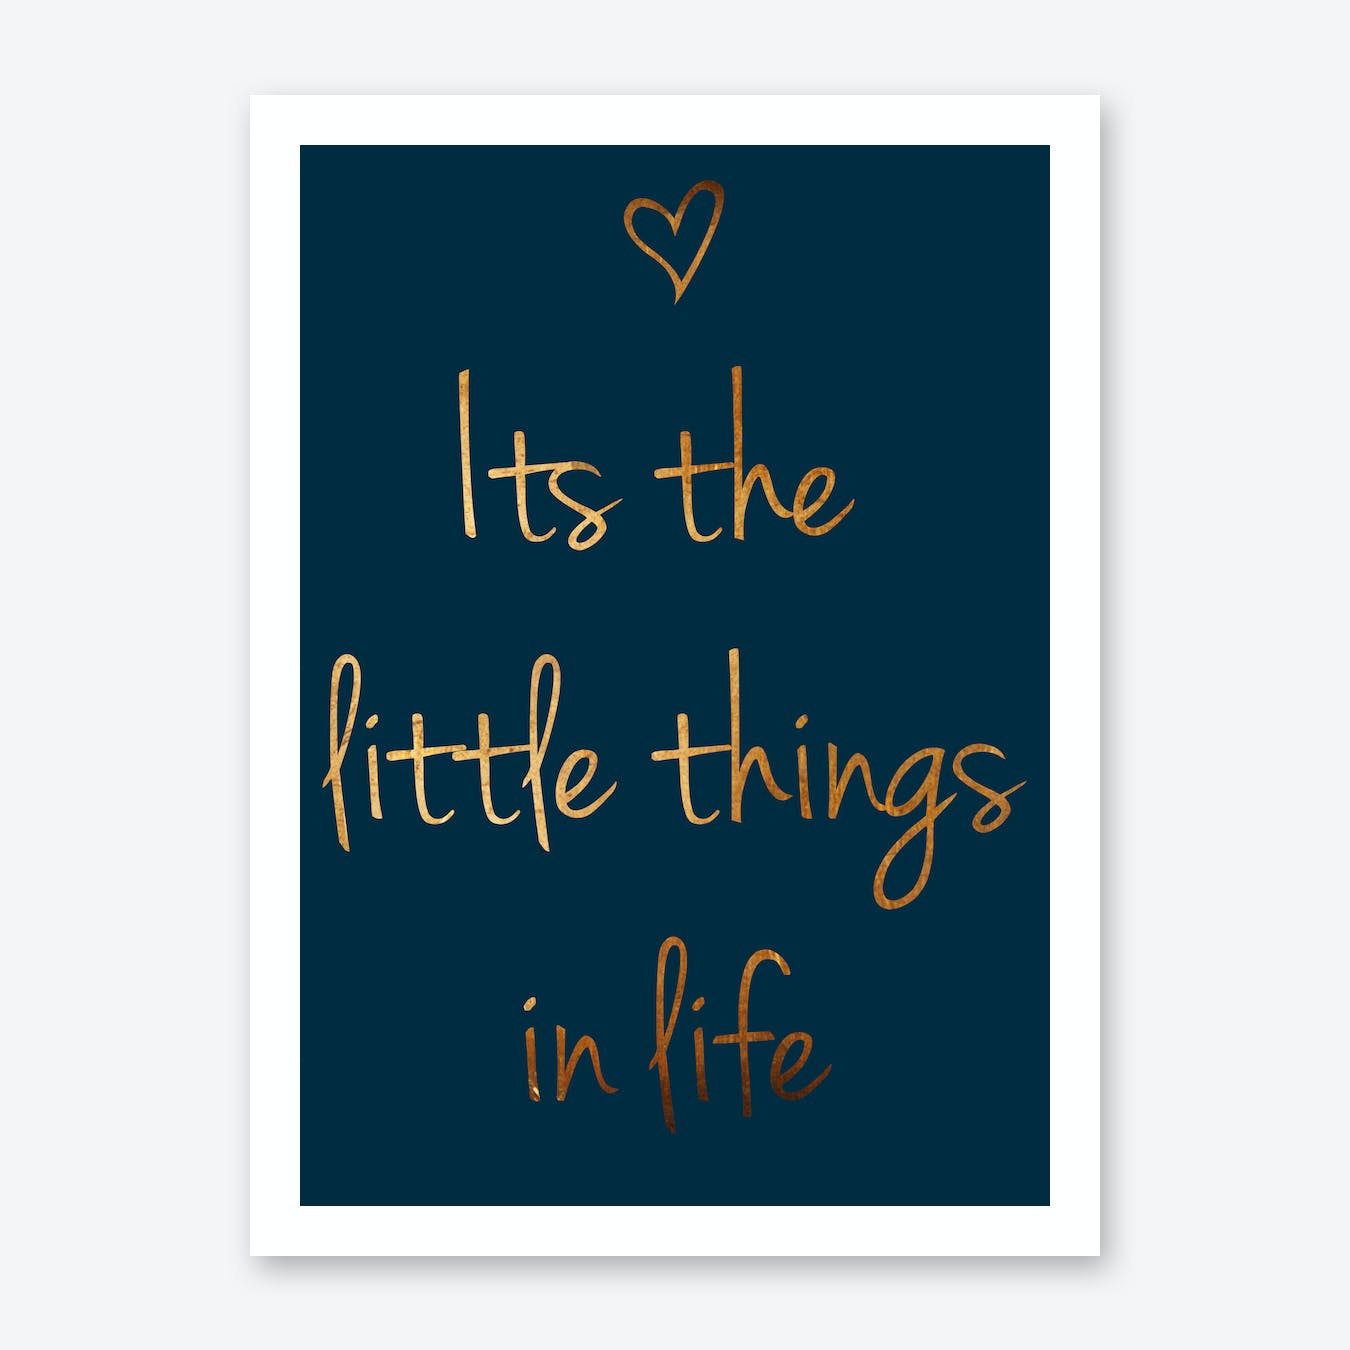 Littlethings III Art Print